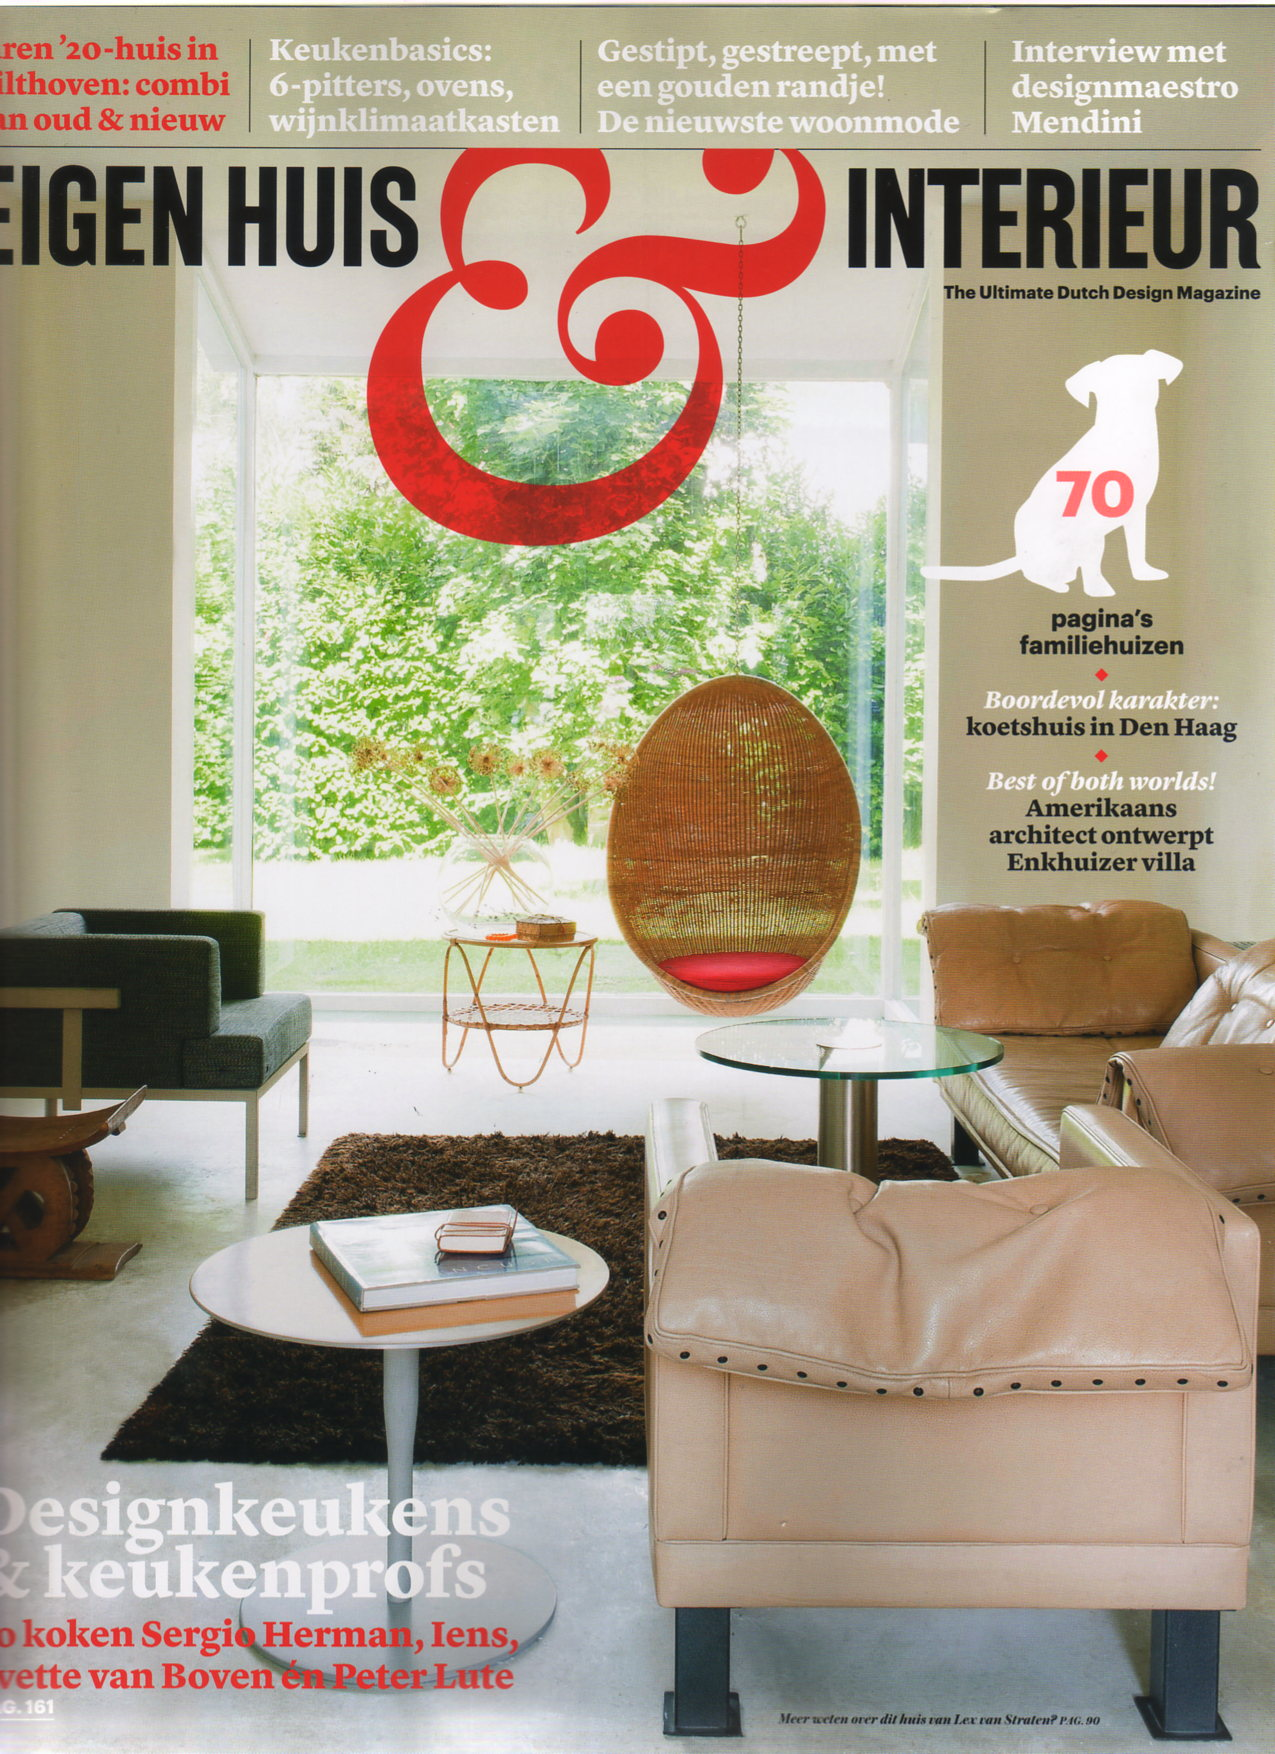 Eigen huis interieur features opposites attract melvin for Eigen huis en interieur